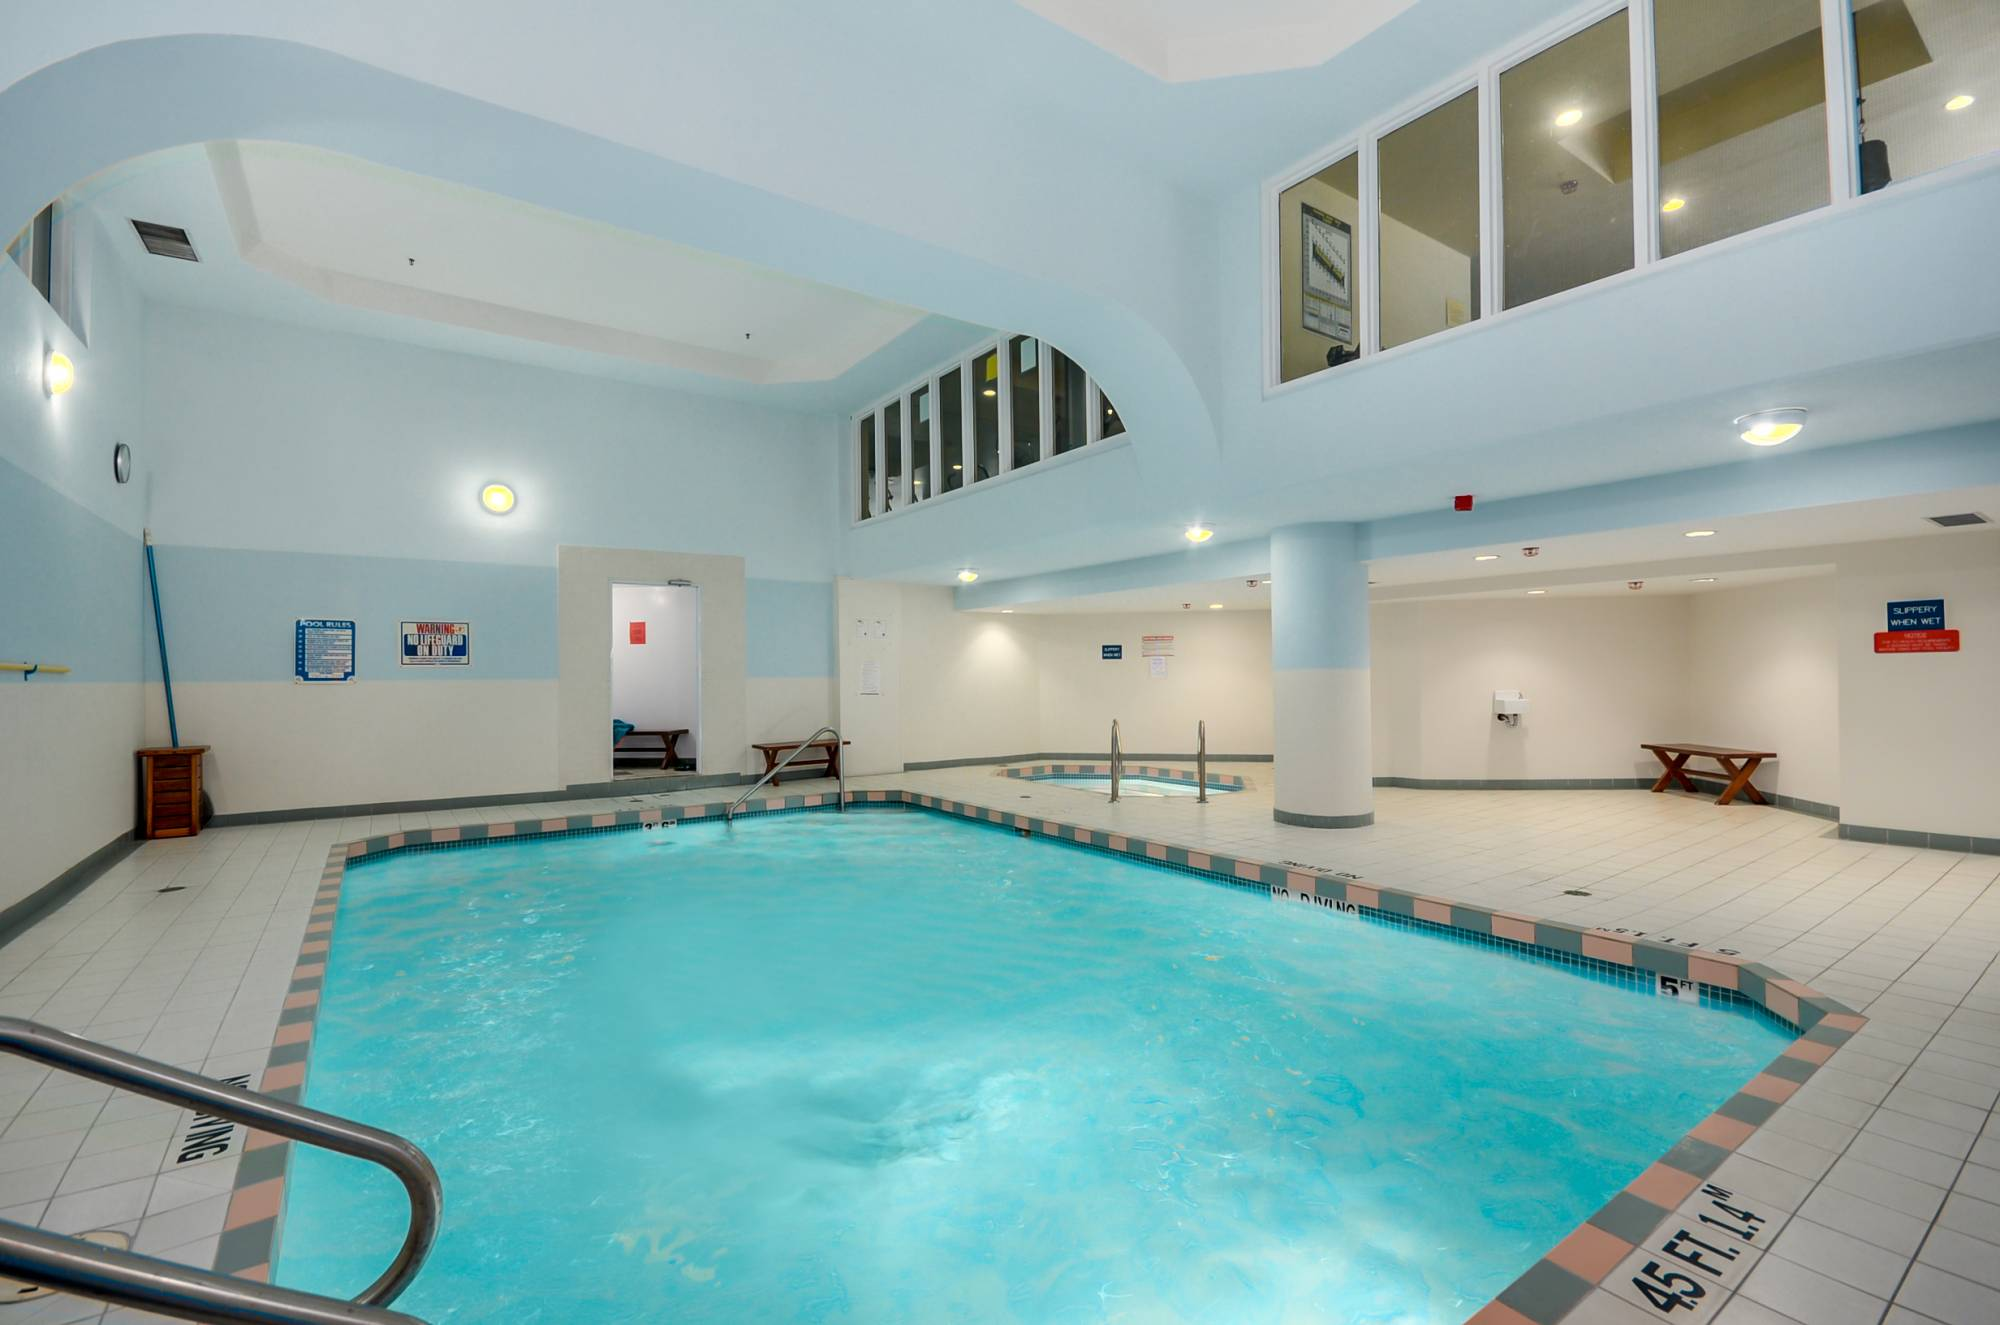 Inside Unit Apartment Condo In Quay New Westminster V1086449 The Riviera At New West Quay